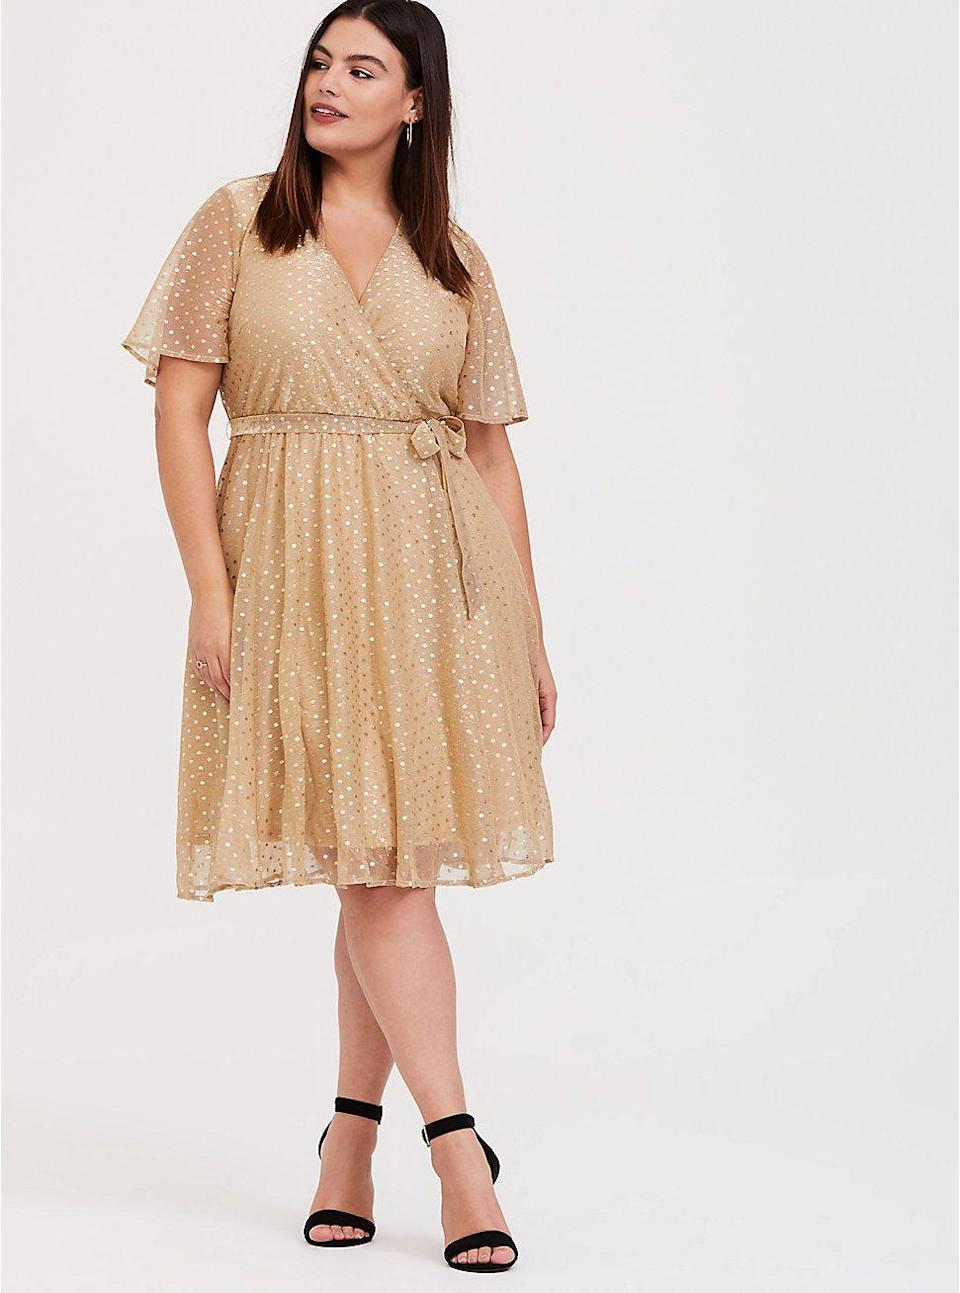 "<p>torrid.com</p><p><strong>$51.67</strong></p><p><a href=""https://go.redirectingat.com?id=74968X1596630&url=https%3A%2F%2Fwww.torrid.com%2Fproduct%2Fgold-metallic-polka-dot-mesh-wrap-dress%2F12141767.html&sref=https%3A%2F%2Fwww.goodhousekeeping.com%2Fholidays%2Fg29954145%2Fplus-size-new-years-dresses%2F"" rel=""nofollow noopener"" target=""_blank"" data-ylk=""slk:Shop Now"" class=""link rapid-noclick-resp"">Shop Now</a></p><p>A basic wrap dress gets a sweet upgrade for New Year's Eve with a mesh overlay covered in metallic gold polka dots. </p>"